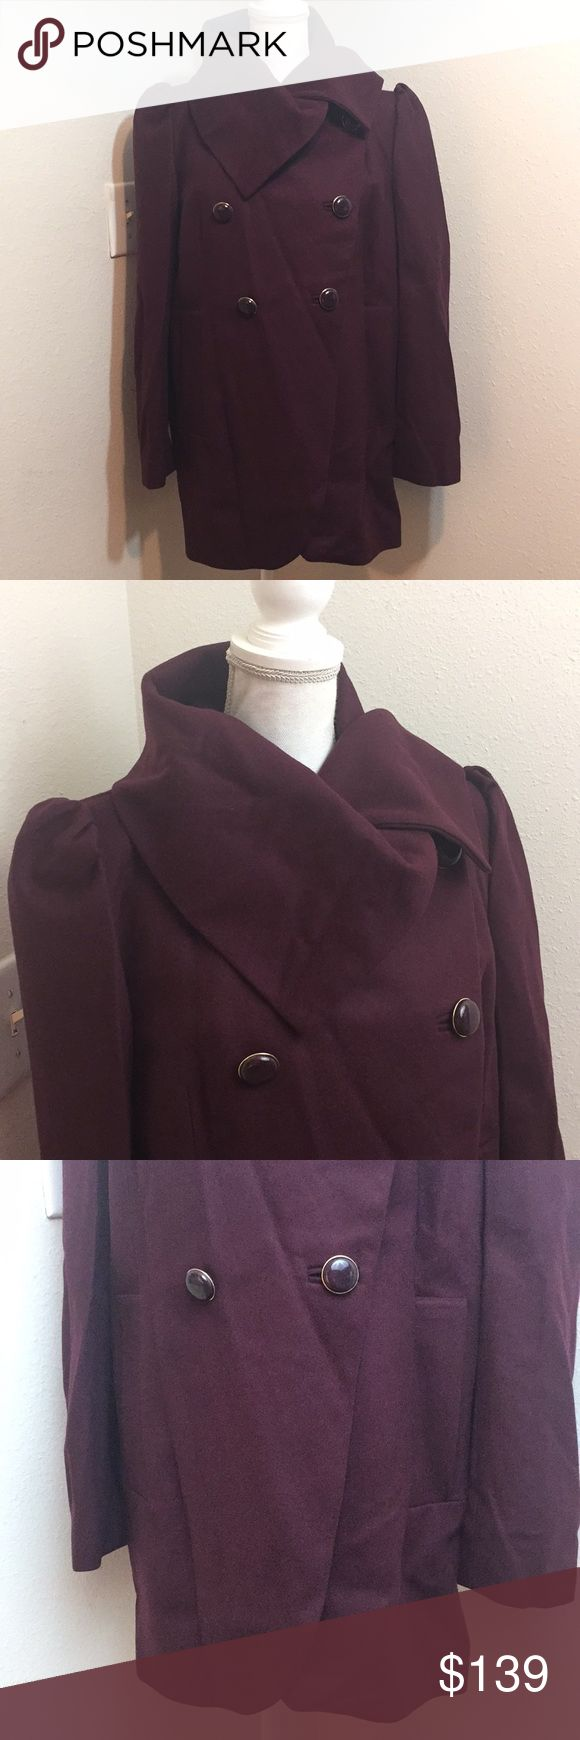 """French Connection Plum Tulip Coat Gorgeous plum color tulip wrap coat. 22"""" bust and 32"""" length. 70% wool, 20% nylon and 10% cashmere. Hard to find coat!! French Connection Jackets & Coats Trench Coats"""